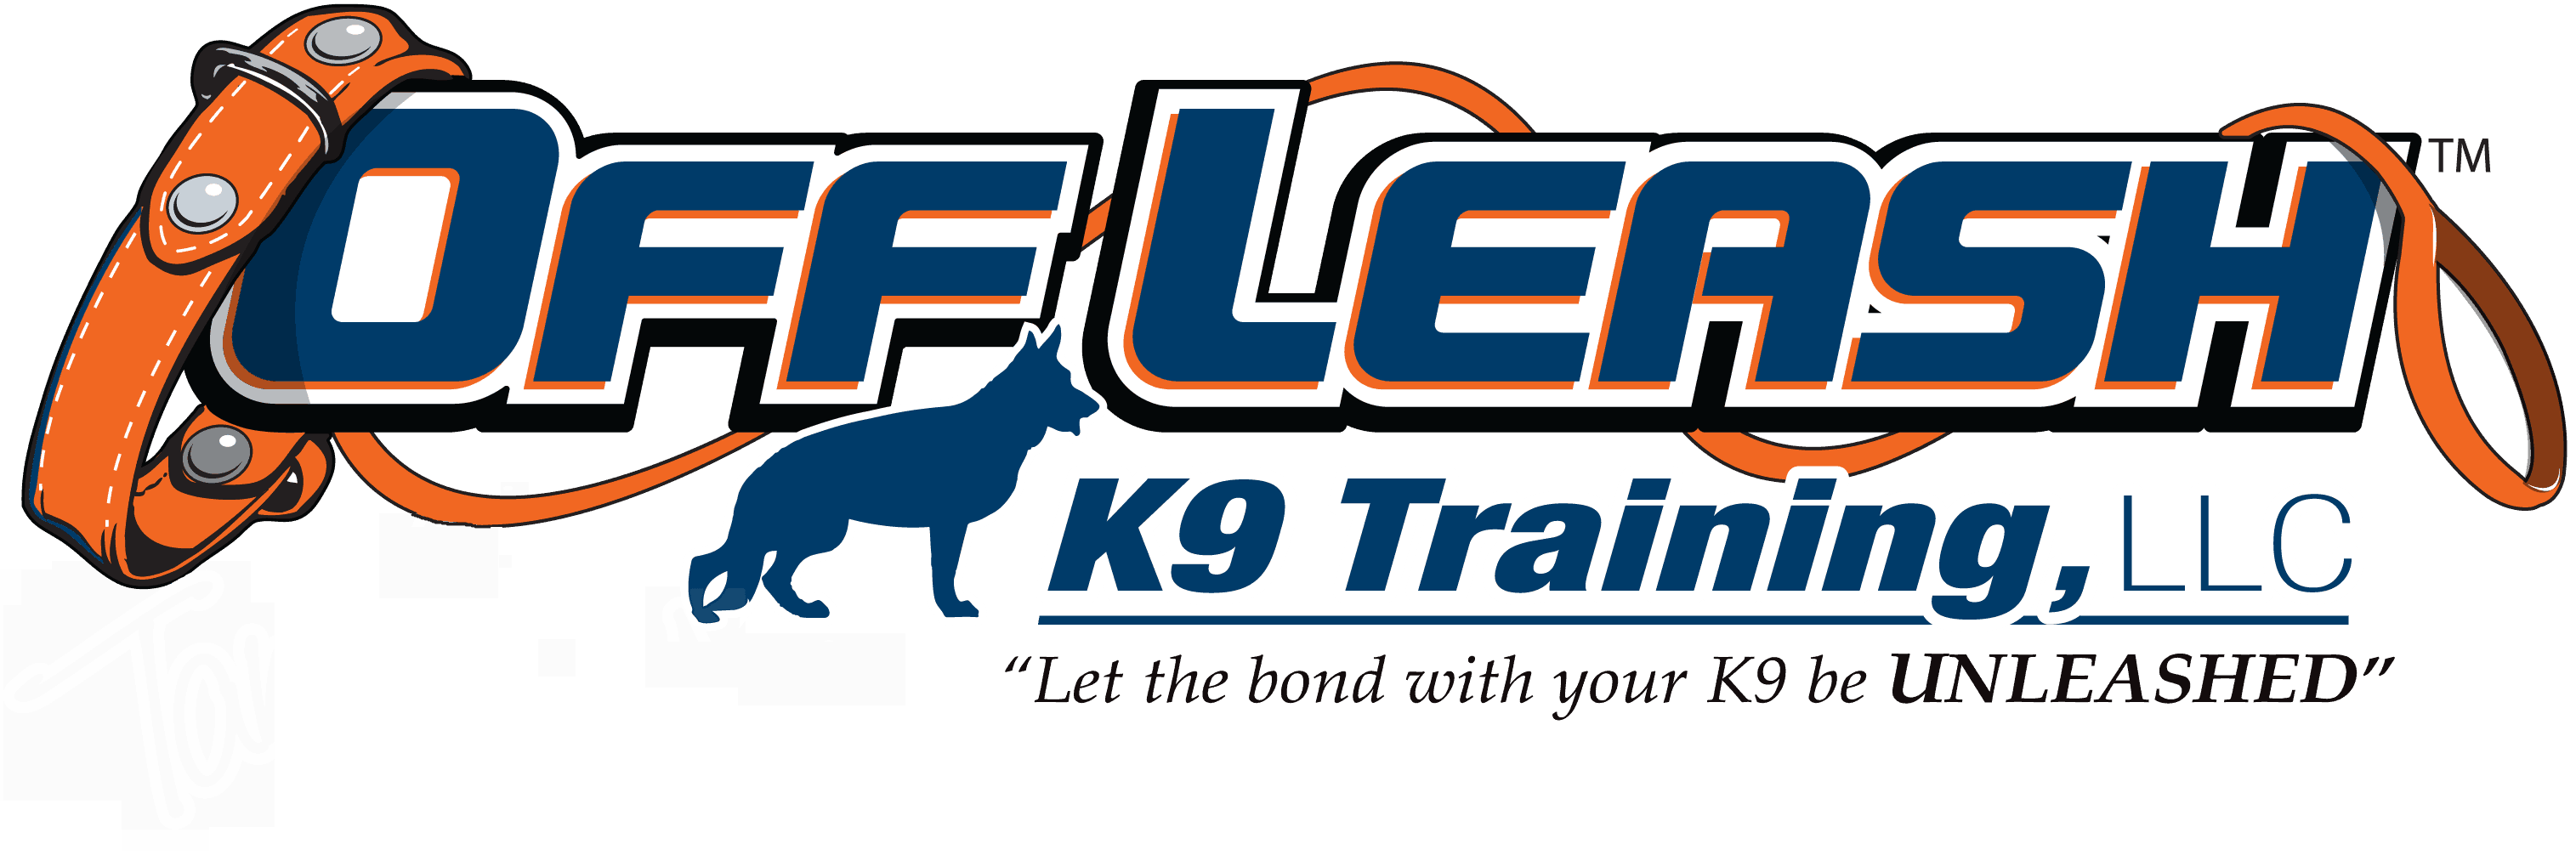 Off Leash K9 Dog Training